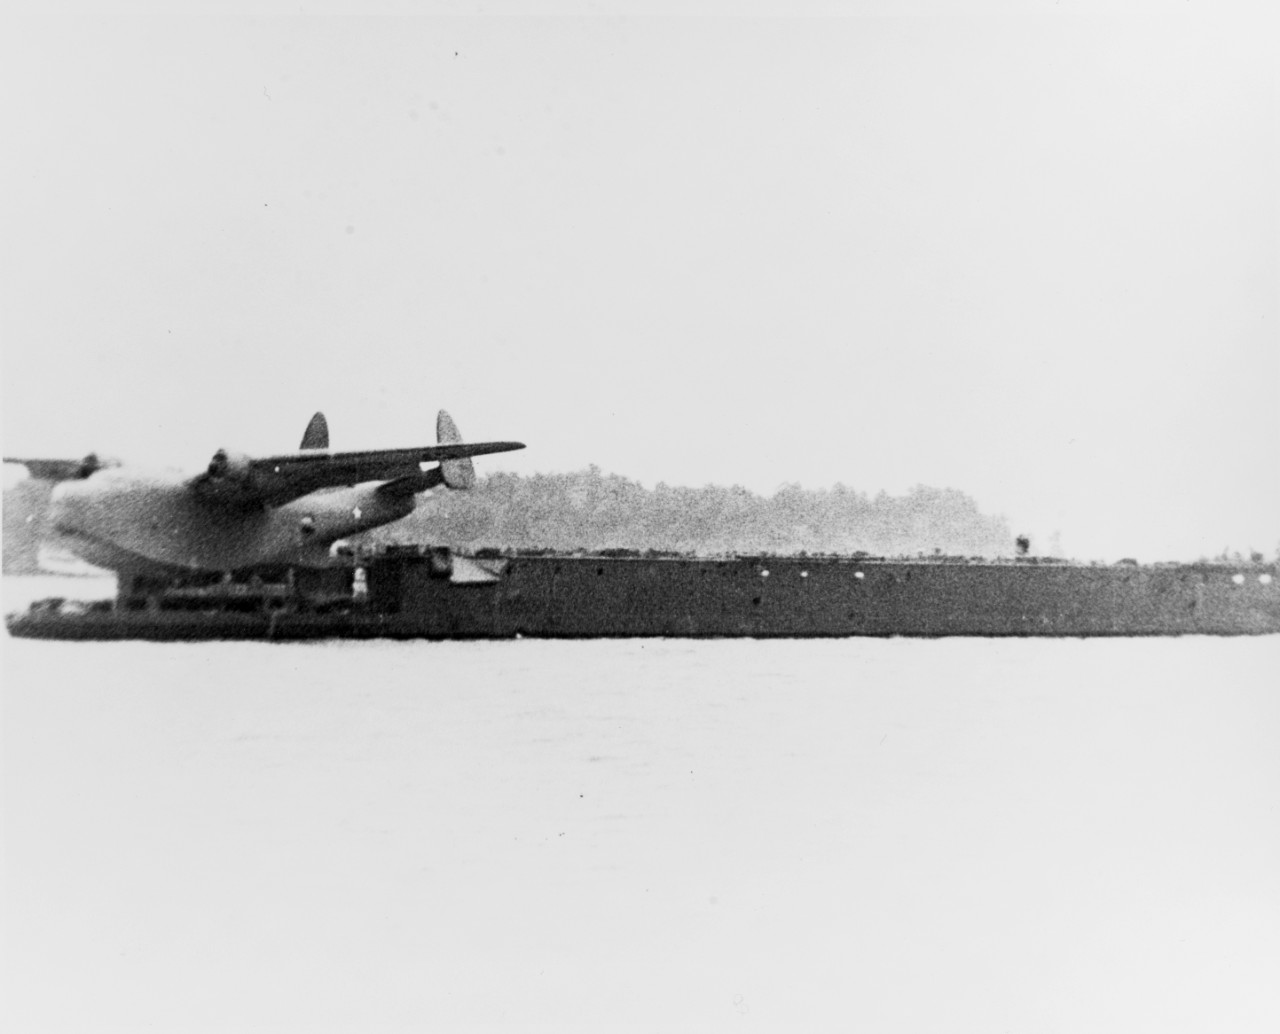 USS AVC-1 on 2 June 1942 with the Martin XPBM-2 patrol bomber at release point from the launching car of the XH-III catapult. This aircraft, Bu# 1247, was a PBM-1 Mariner modified for long-range operations with additional fuel tanks and a reinforced airframe to permit catapult launching. Only the prototype was built, and after catapult trials it served as a static test article at Philadelphia until stricken in June 1944.